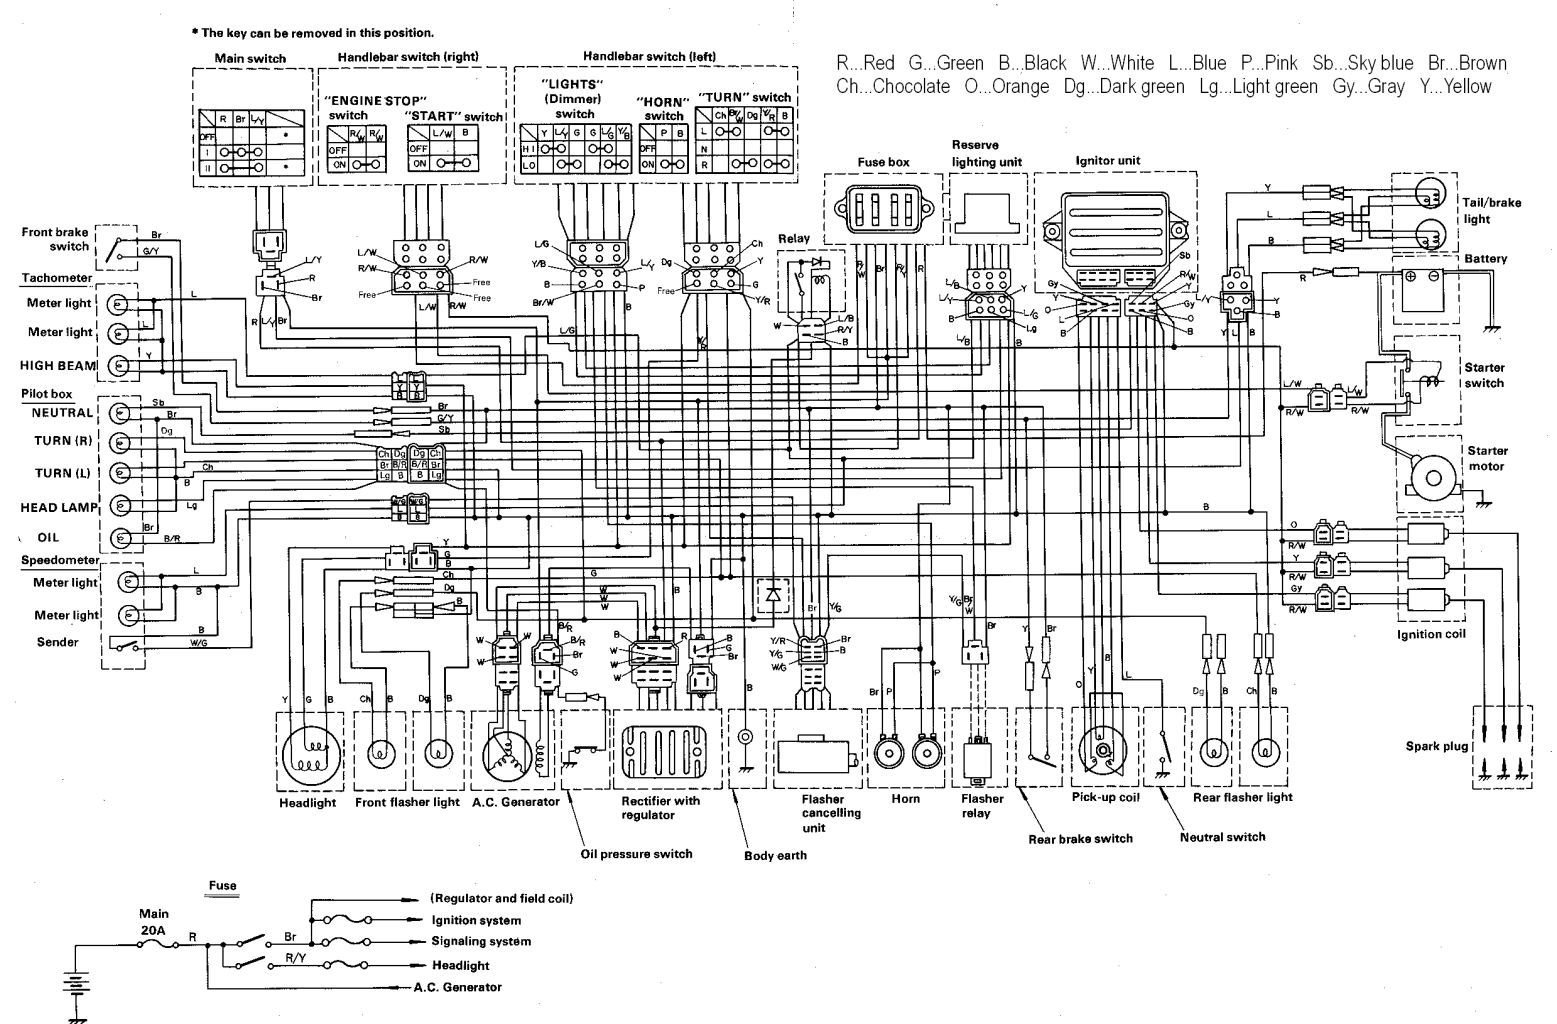 850g_wiring the yamaha triples community workshop electrical 1975 xs650 wiring diagram at gsmx.co